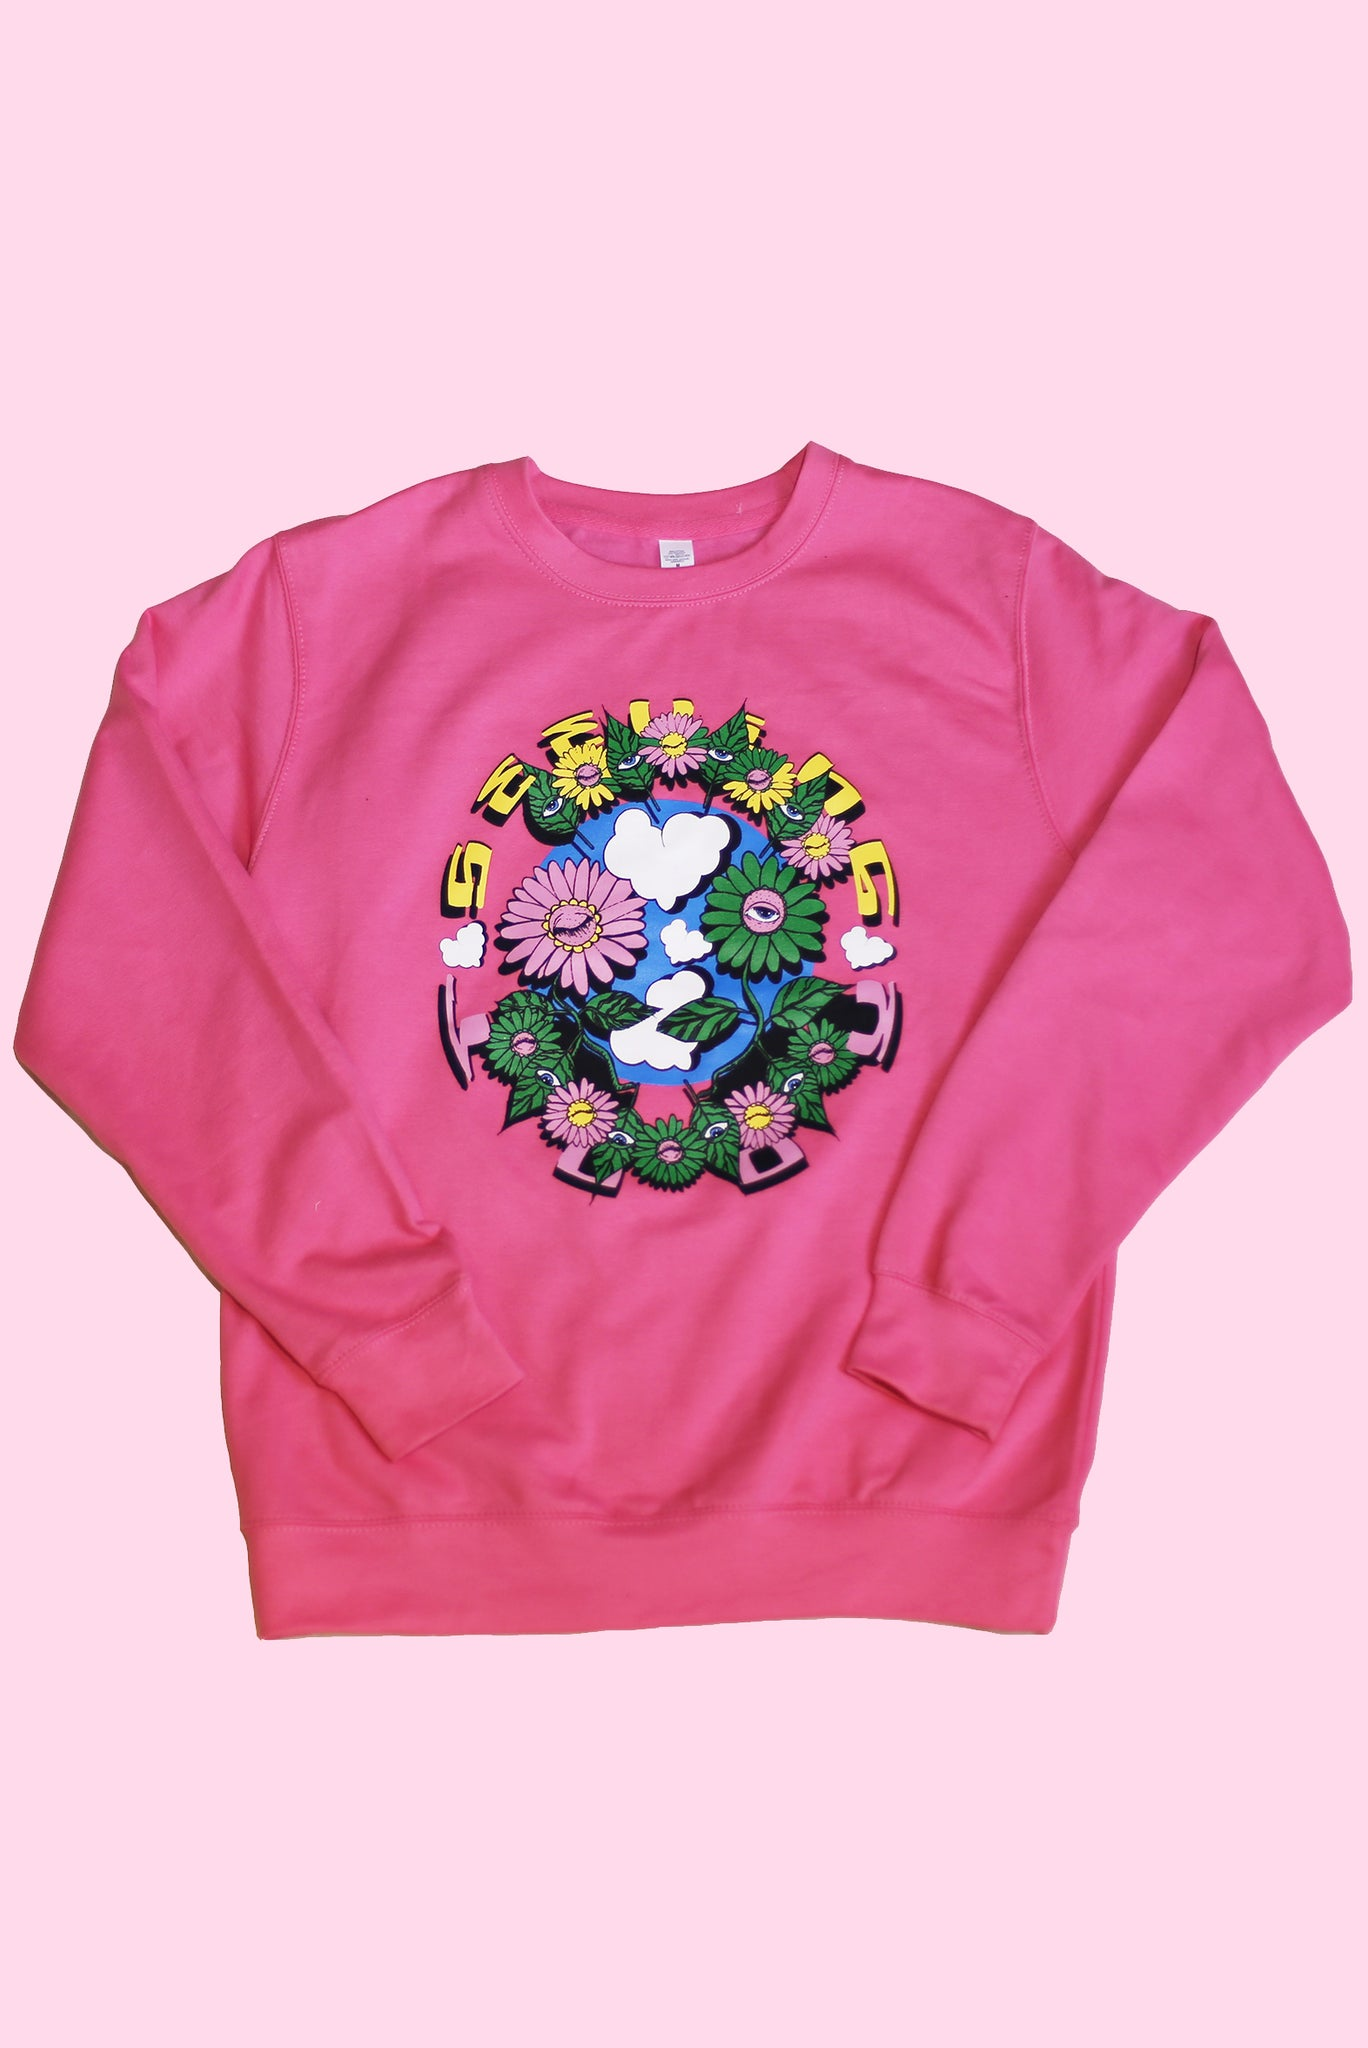 'Plant Friends' Pink sweatshirt